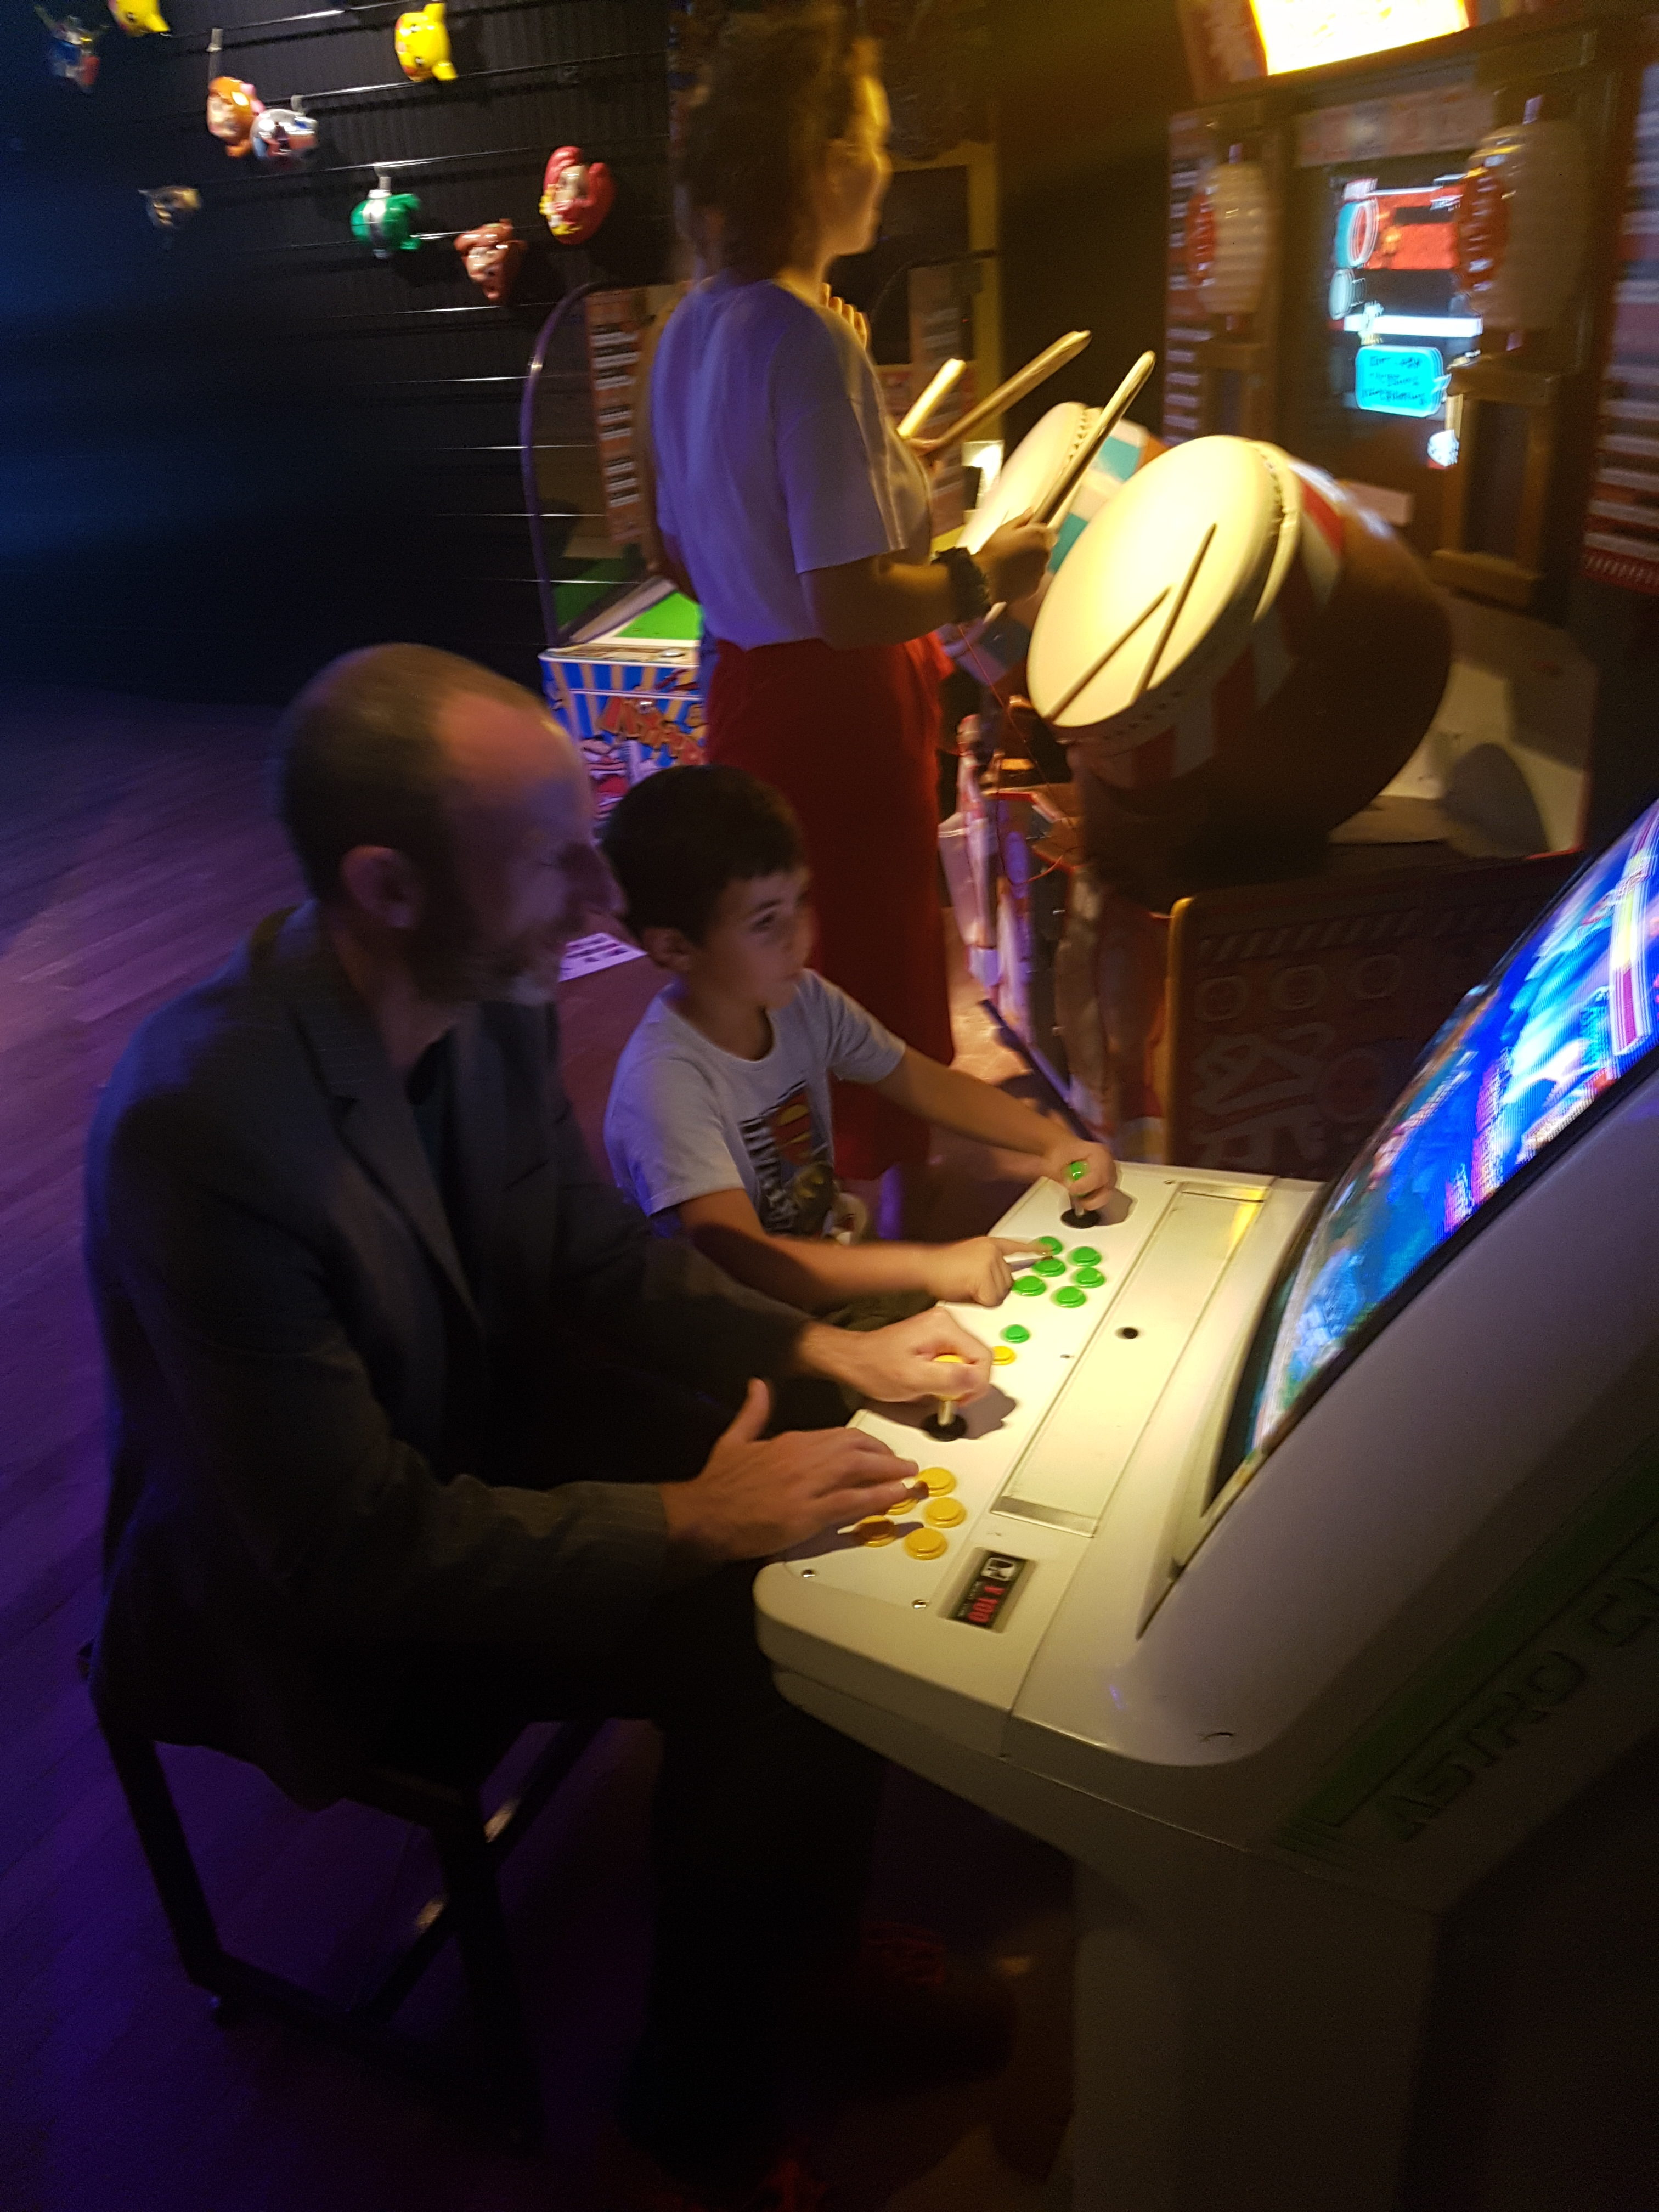 playing vintage arcade game at the tropenmuseum in Amsterdam